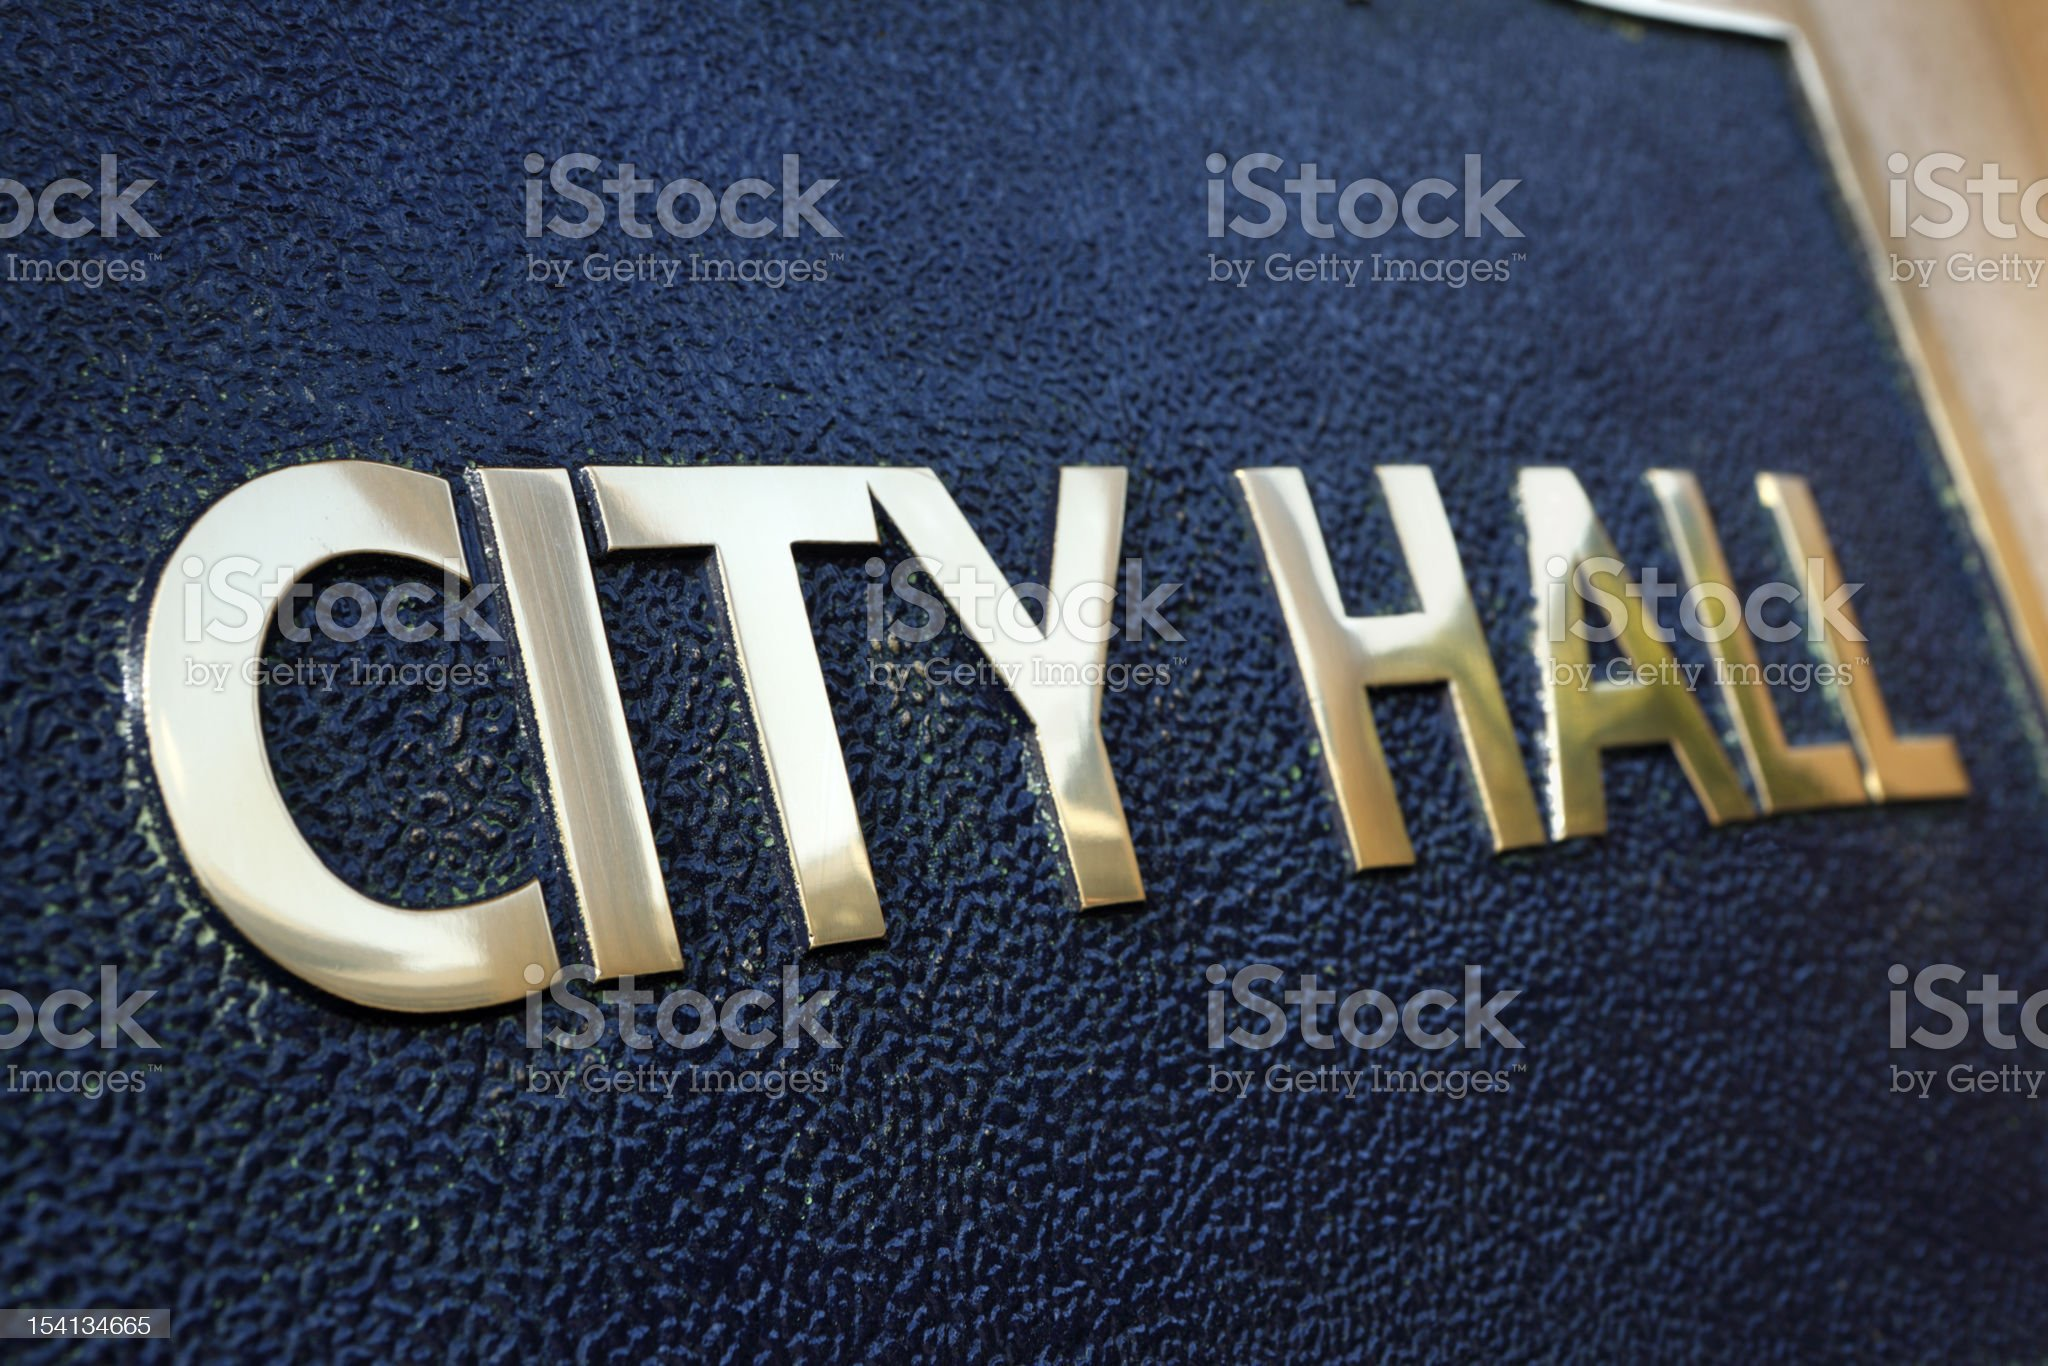 City Hall building nameplate royalty-free stock photo